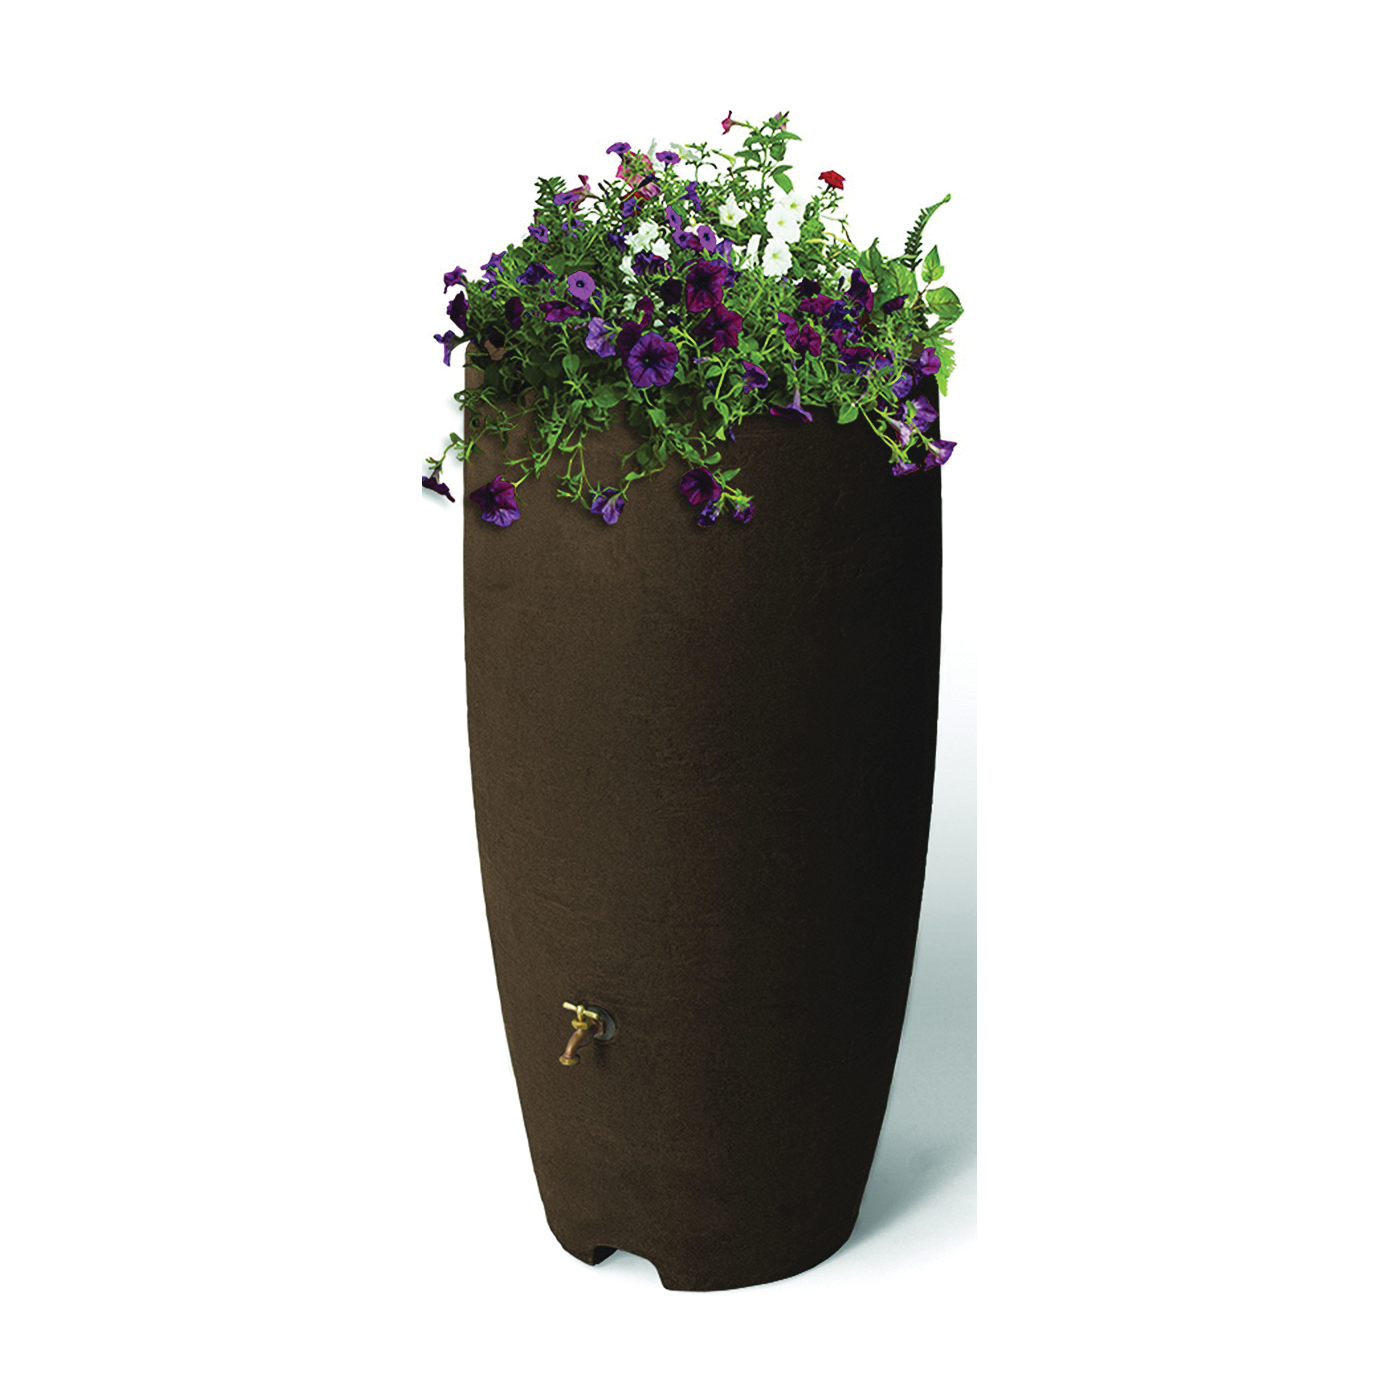 Picture of Algreen 86311 Rain Barrel, 80 gal Capacity, Brass, Brownstone